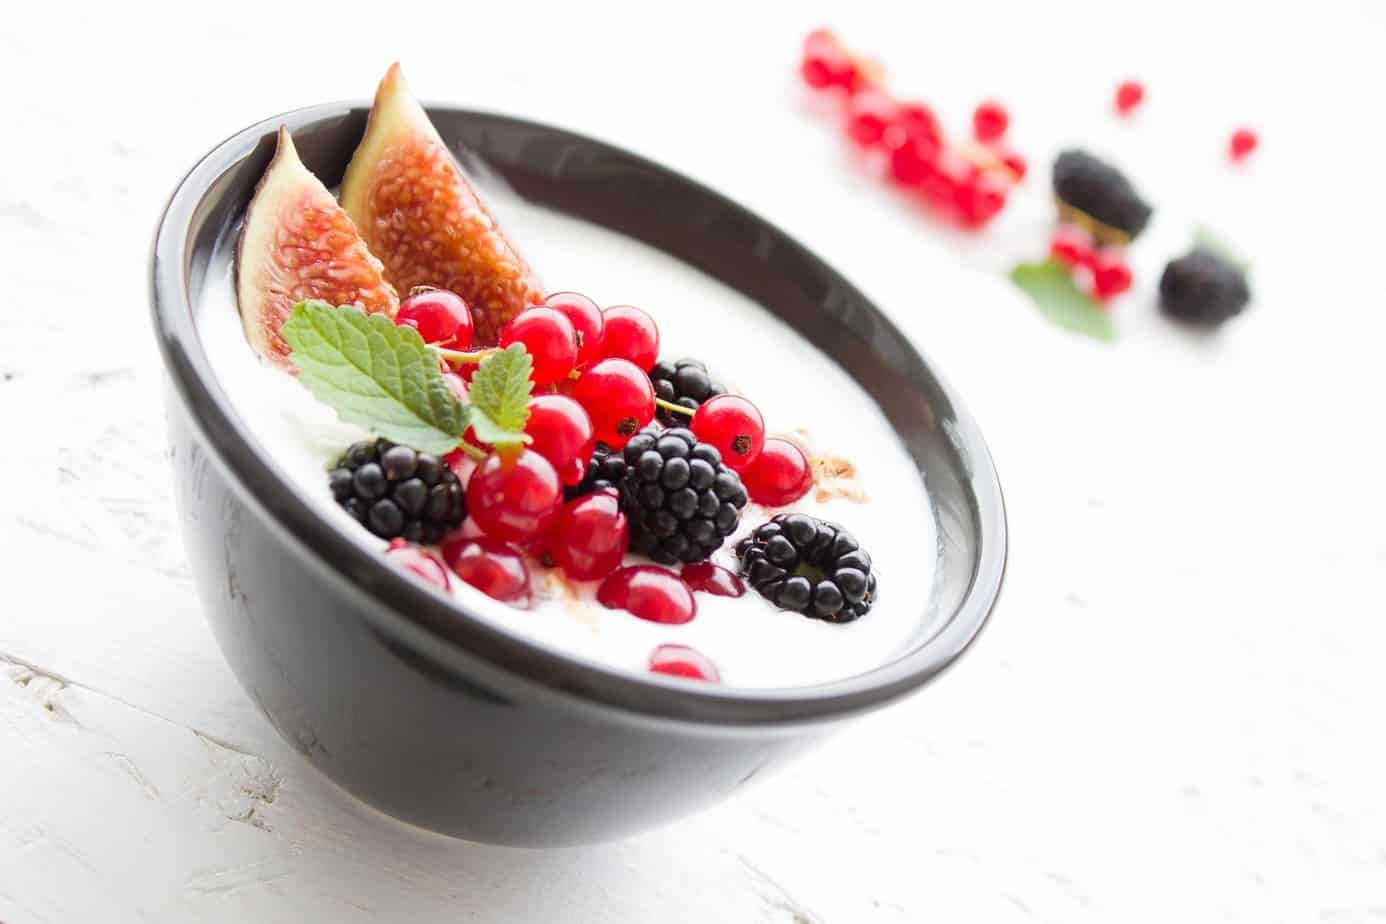 yogurt topped with berries and a fresh fig